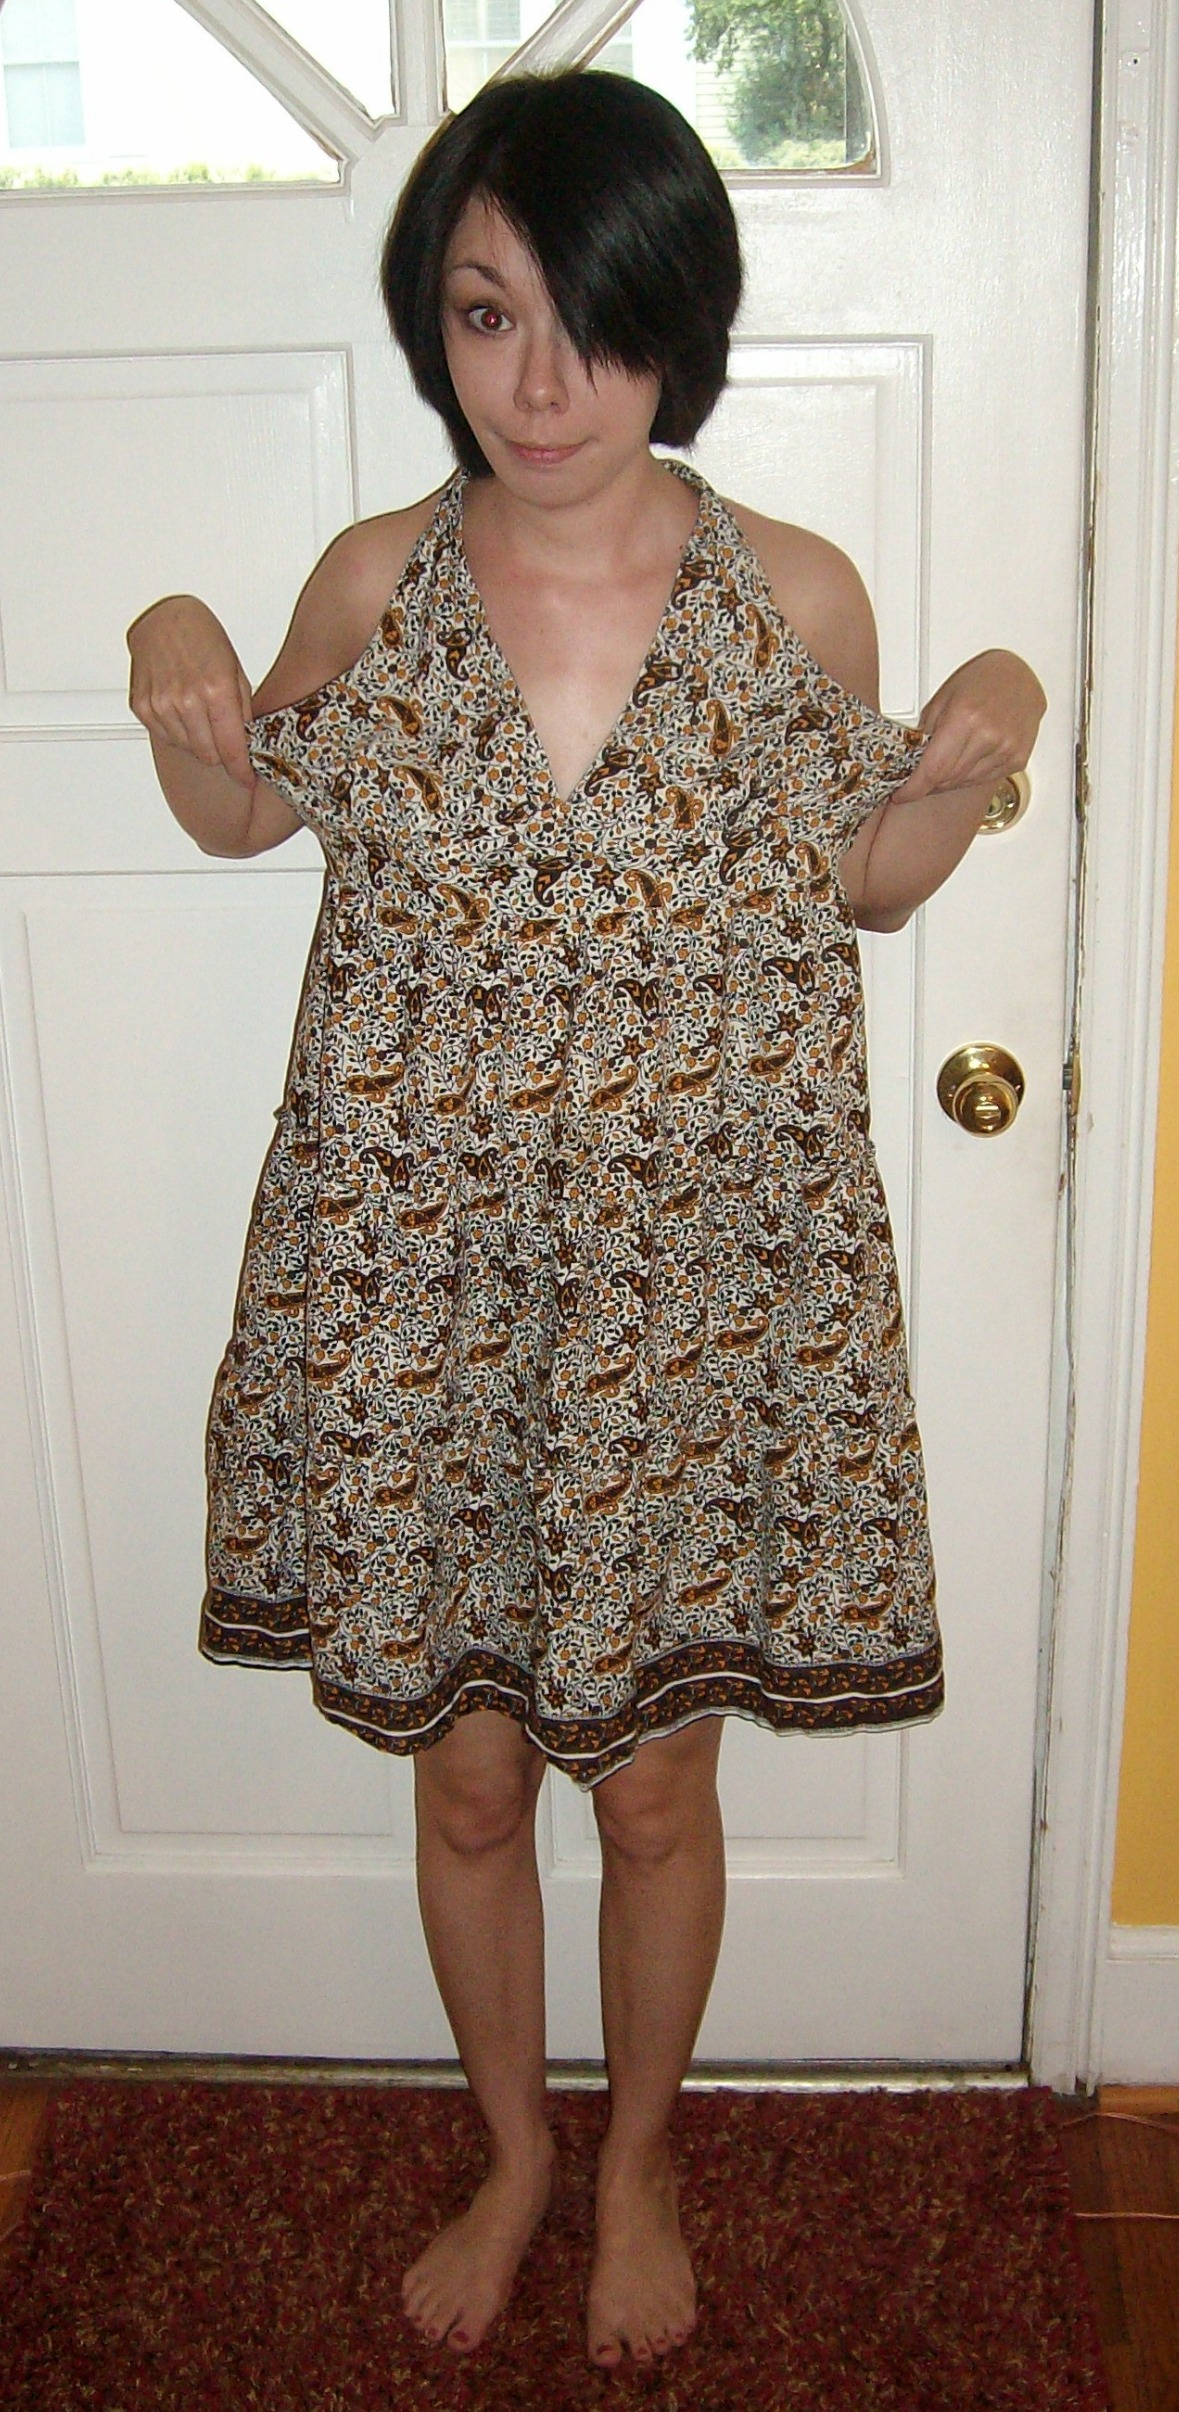 Day 28:  Pretty in Paisley Dress 2